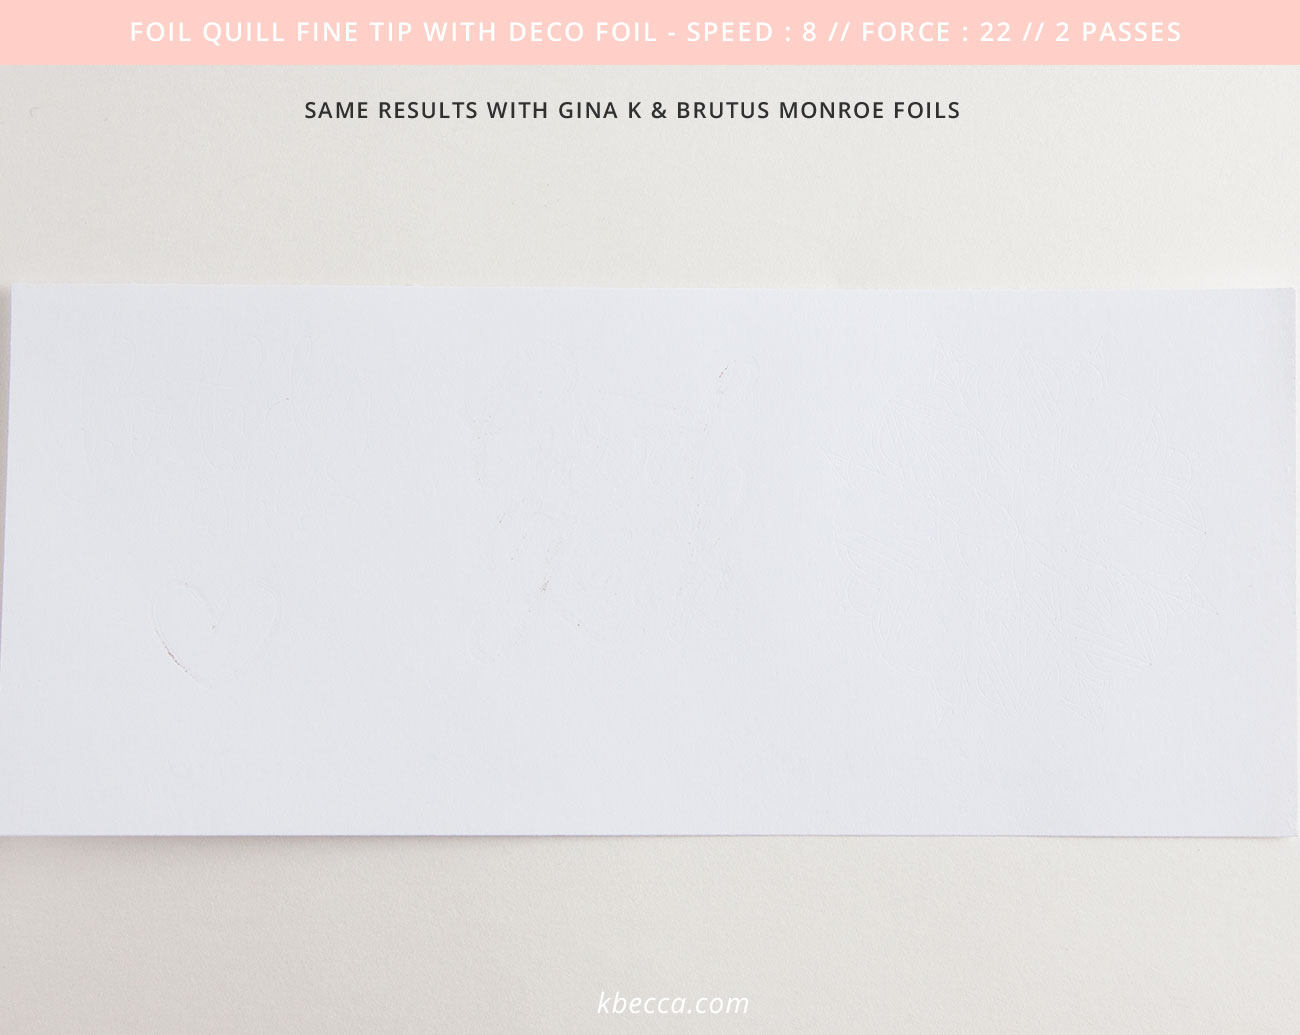 We R Memory Keepers Foil Quill Fine Tip Results with Deco Foil #foilquill #silhouettecameo